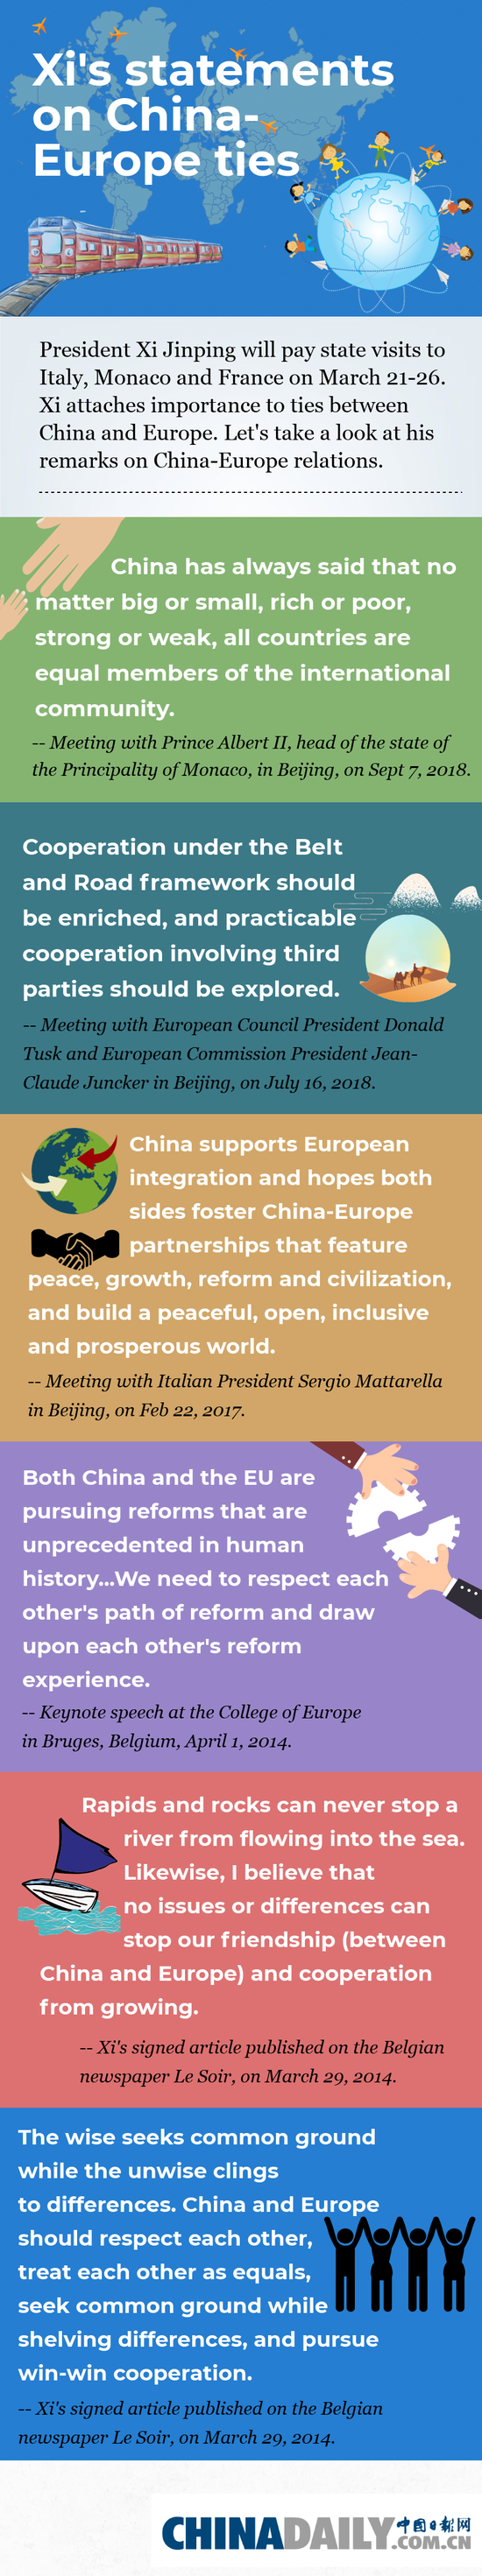 Xi's statements on China-Europe ties